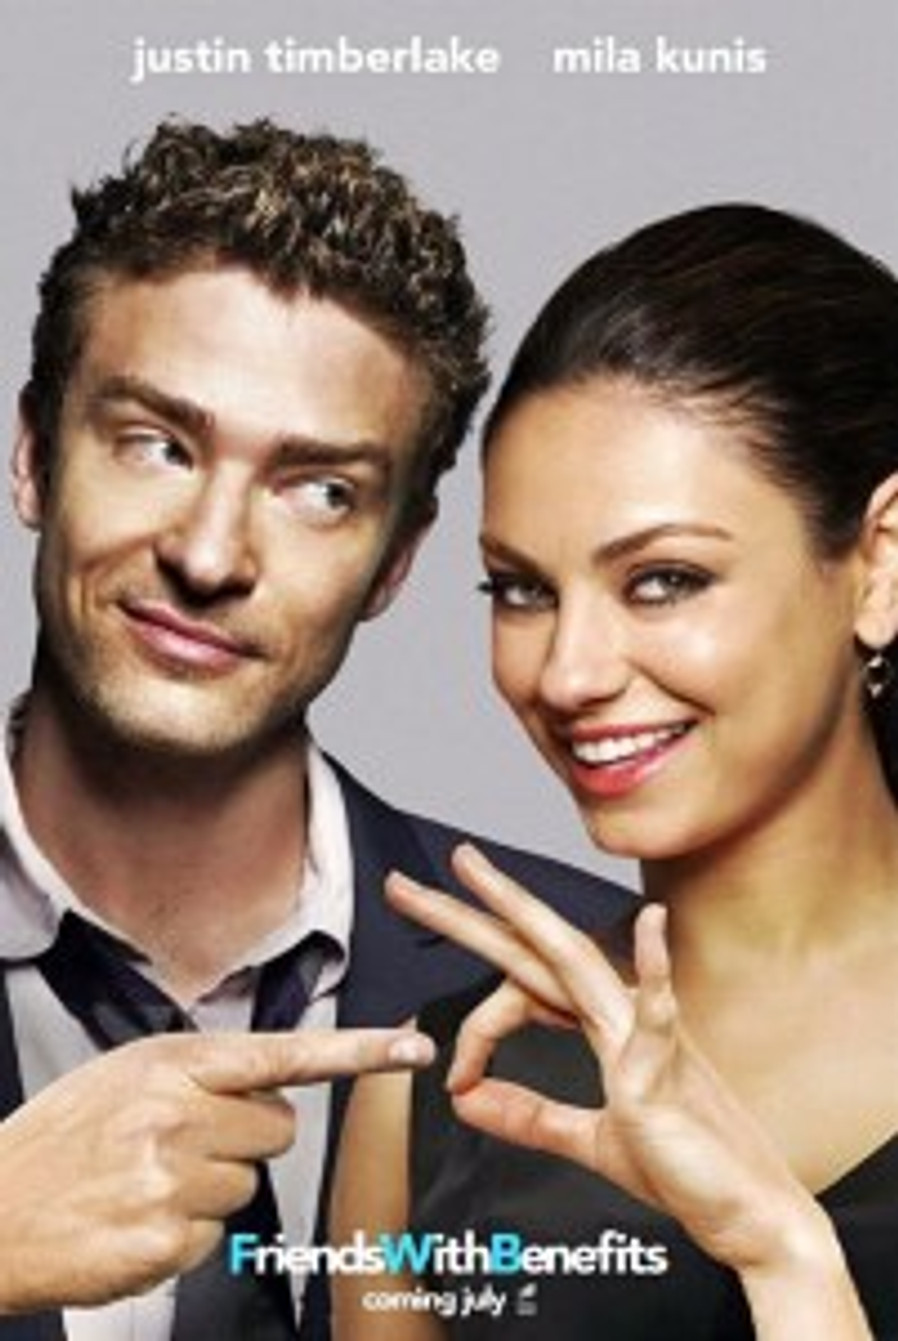 Image: Friends with Benefits